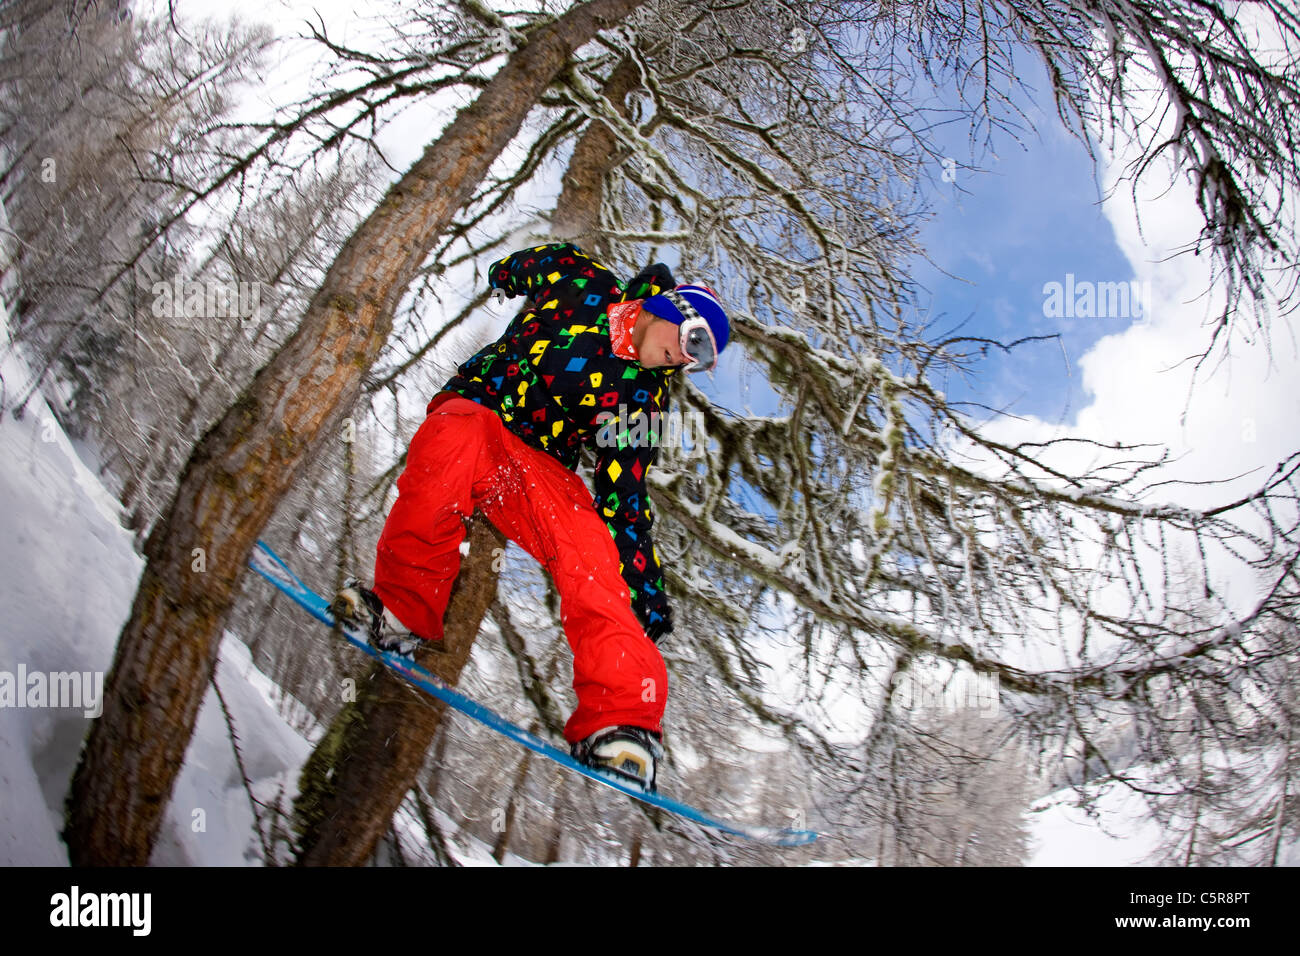 A snowboarder riding through a snowy forest jumps through two trees. - Stock Image